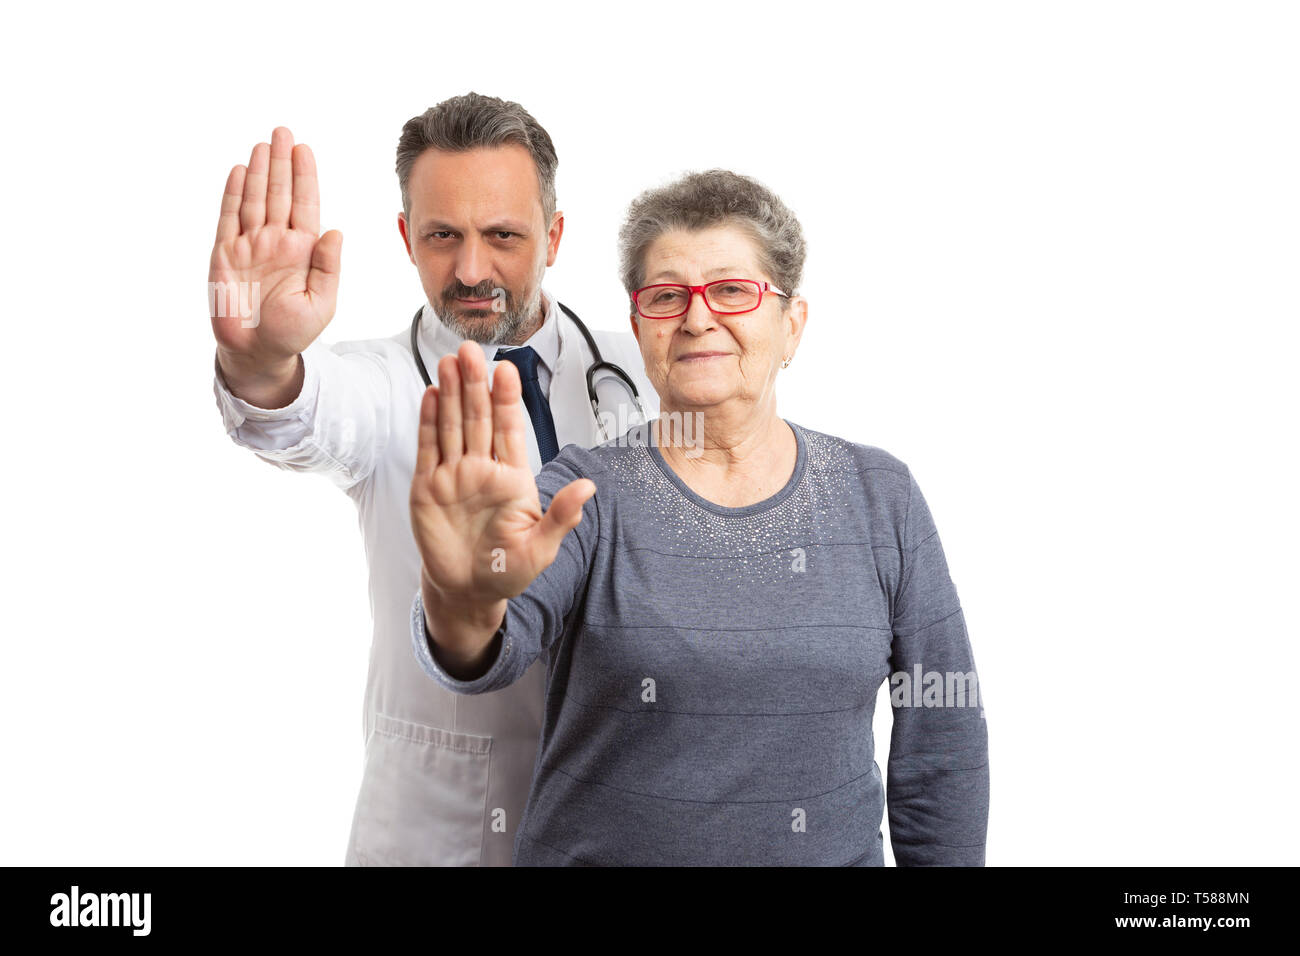 Female patient and doctor man with serious expressions holding palm up as wait gesture isolated on white background - Stock Image